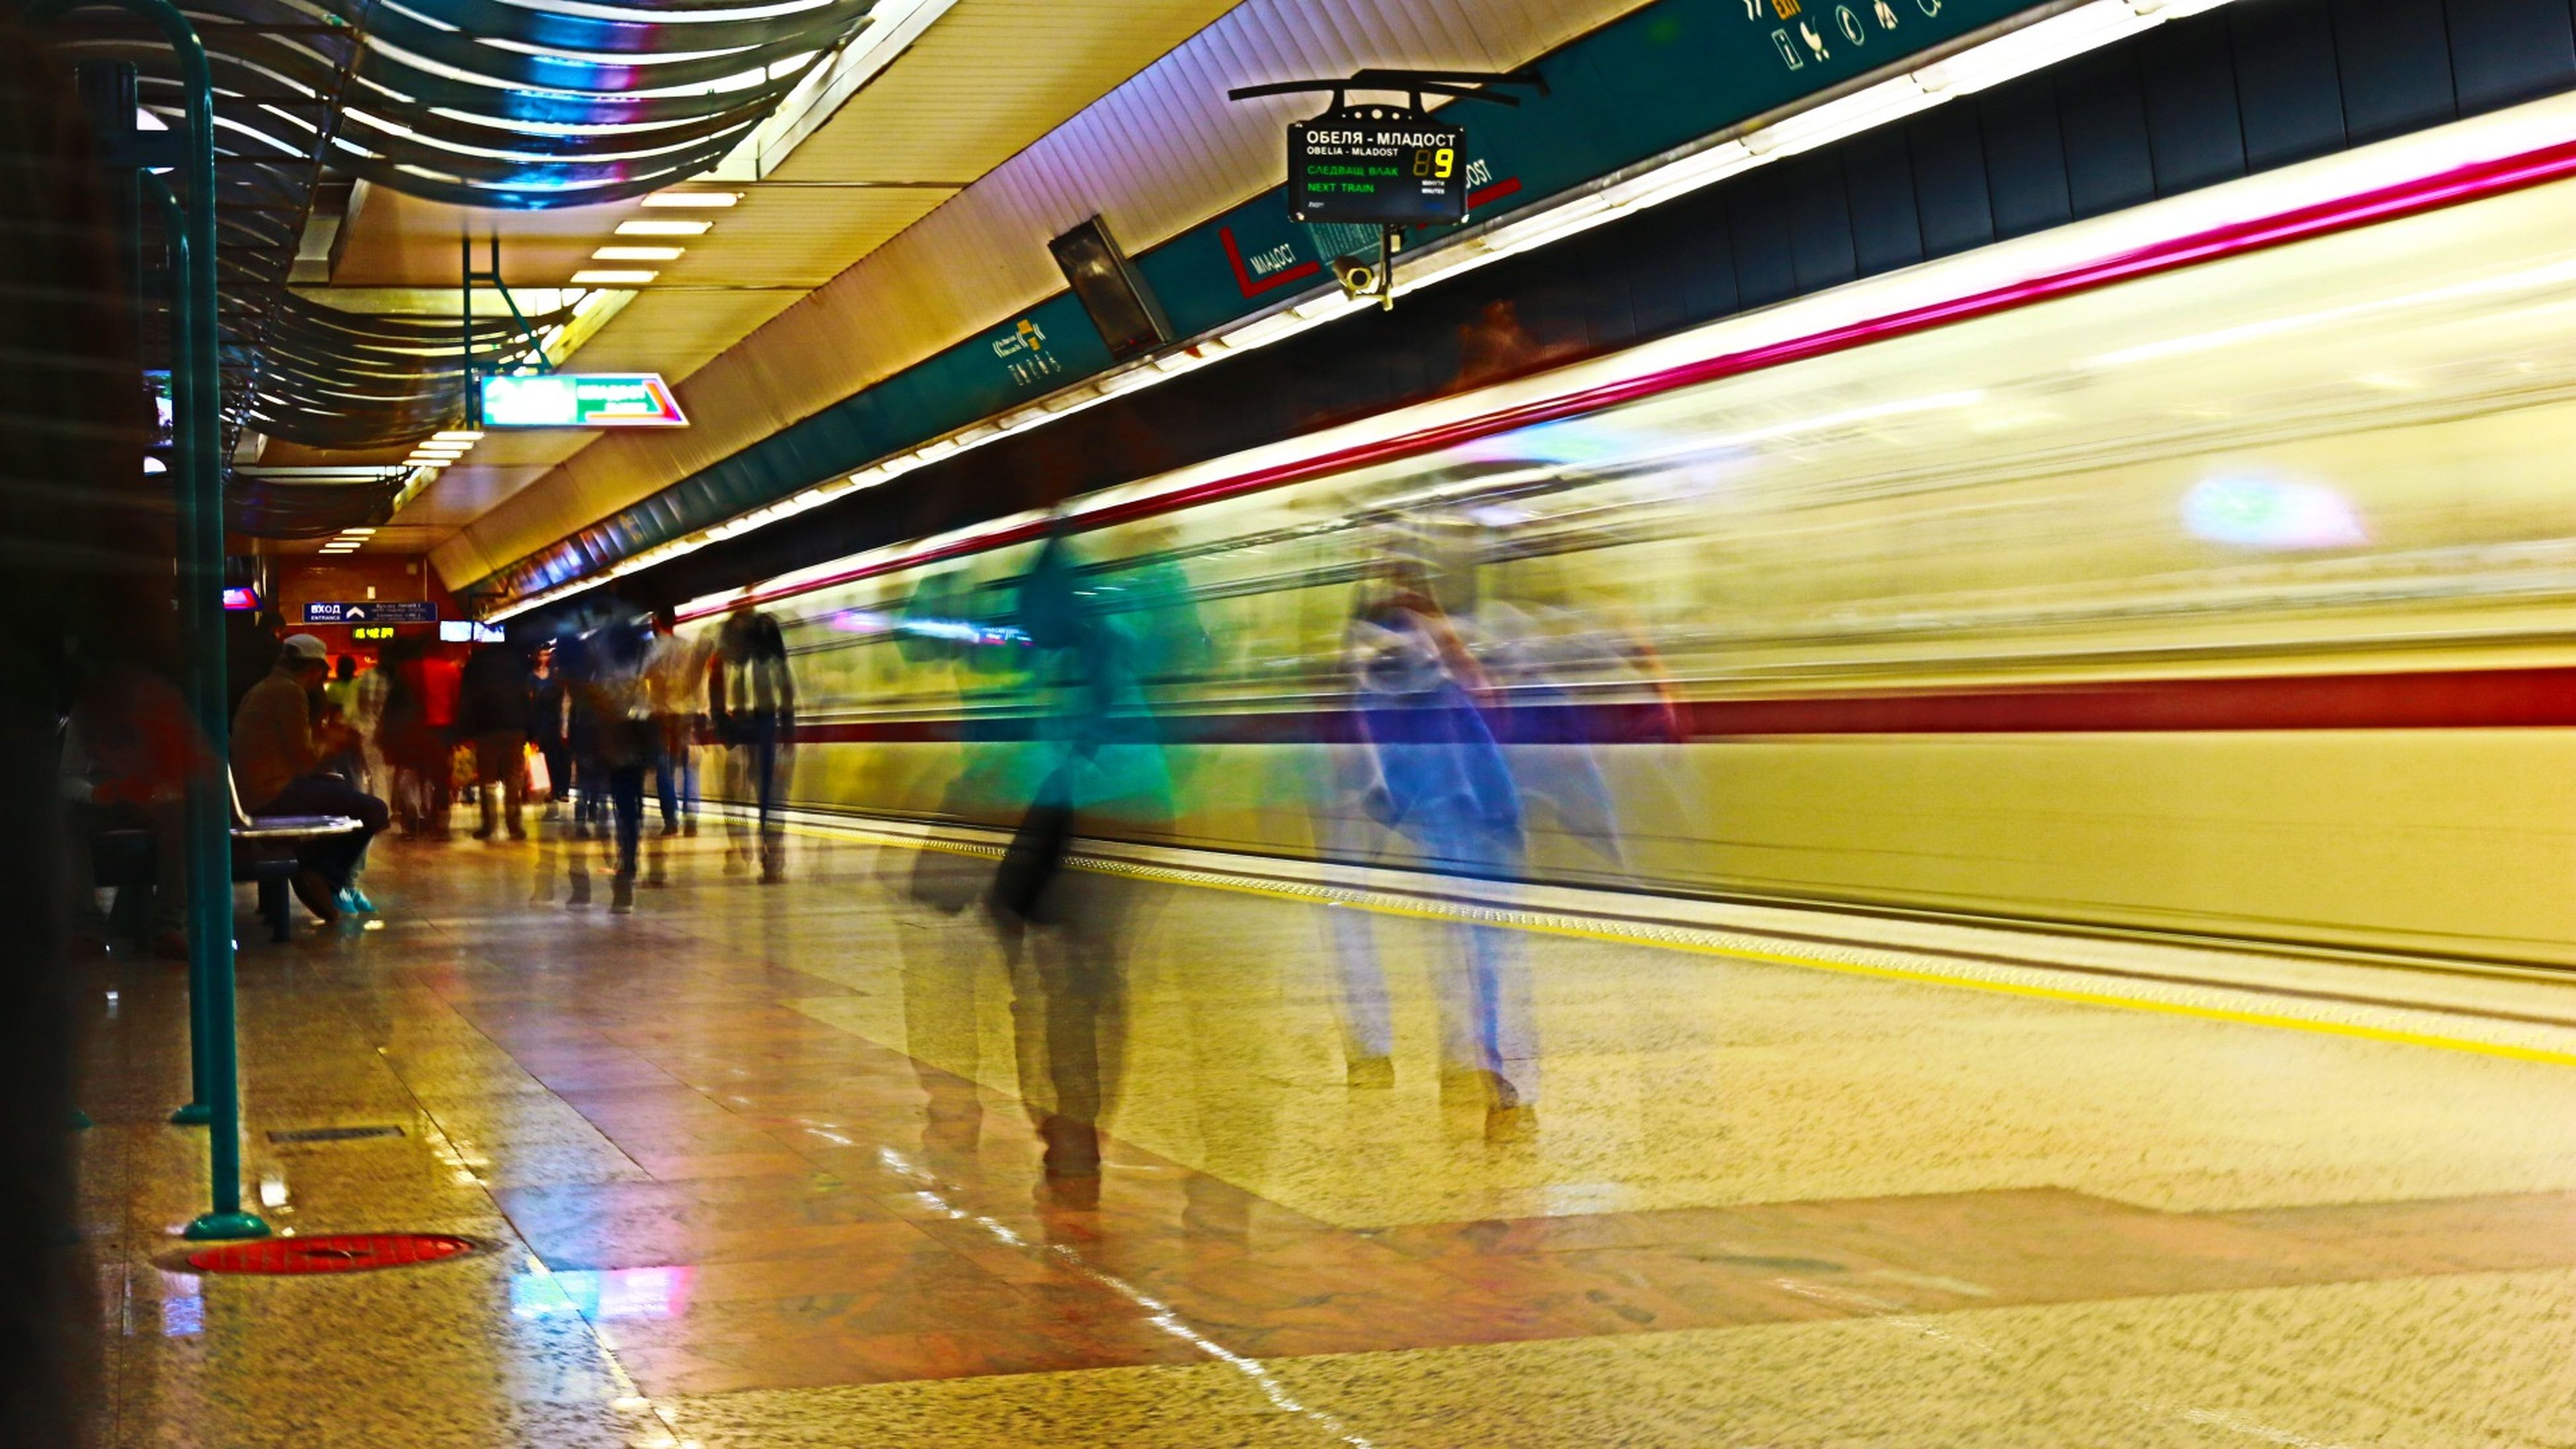 illuminated, blurred motion, night, indoors, lifestyles, motion, men, speed, person, long exposure, leisure activity, built structure, travel, city life, large group of people, transportation, reflection, walking, subway station